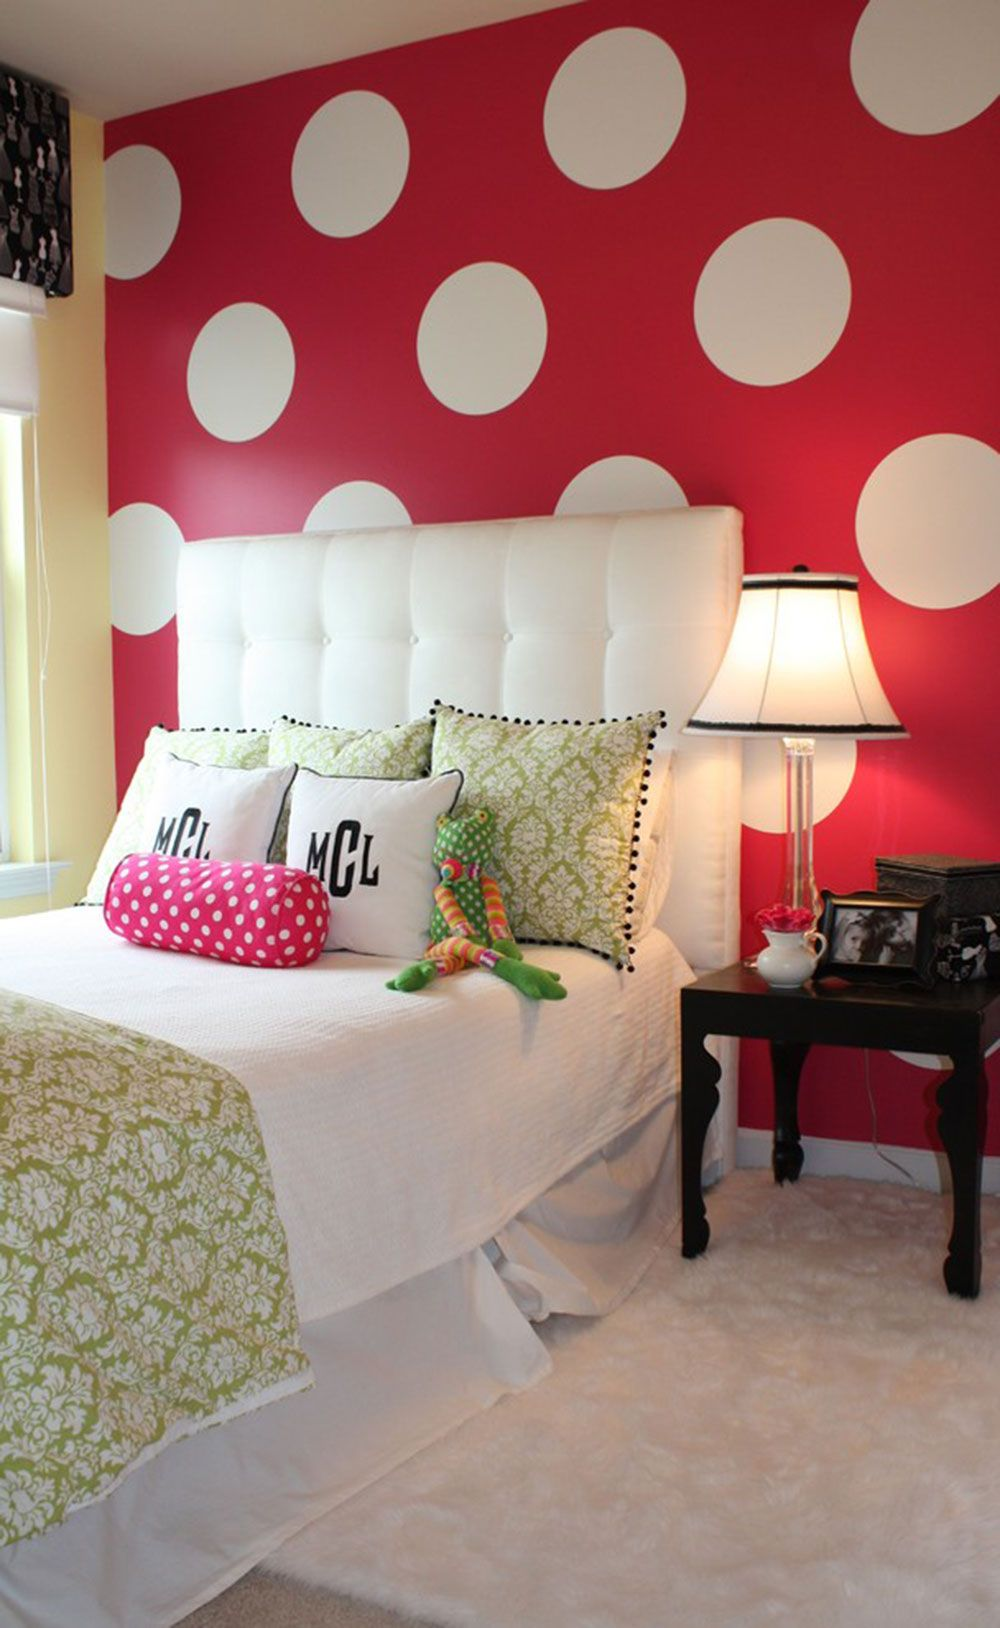 Decorating ideas Cool things for your room to try now